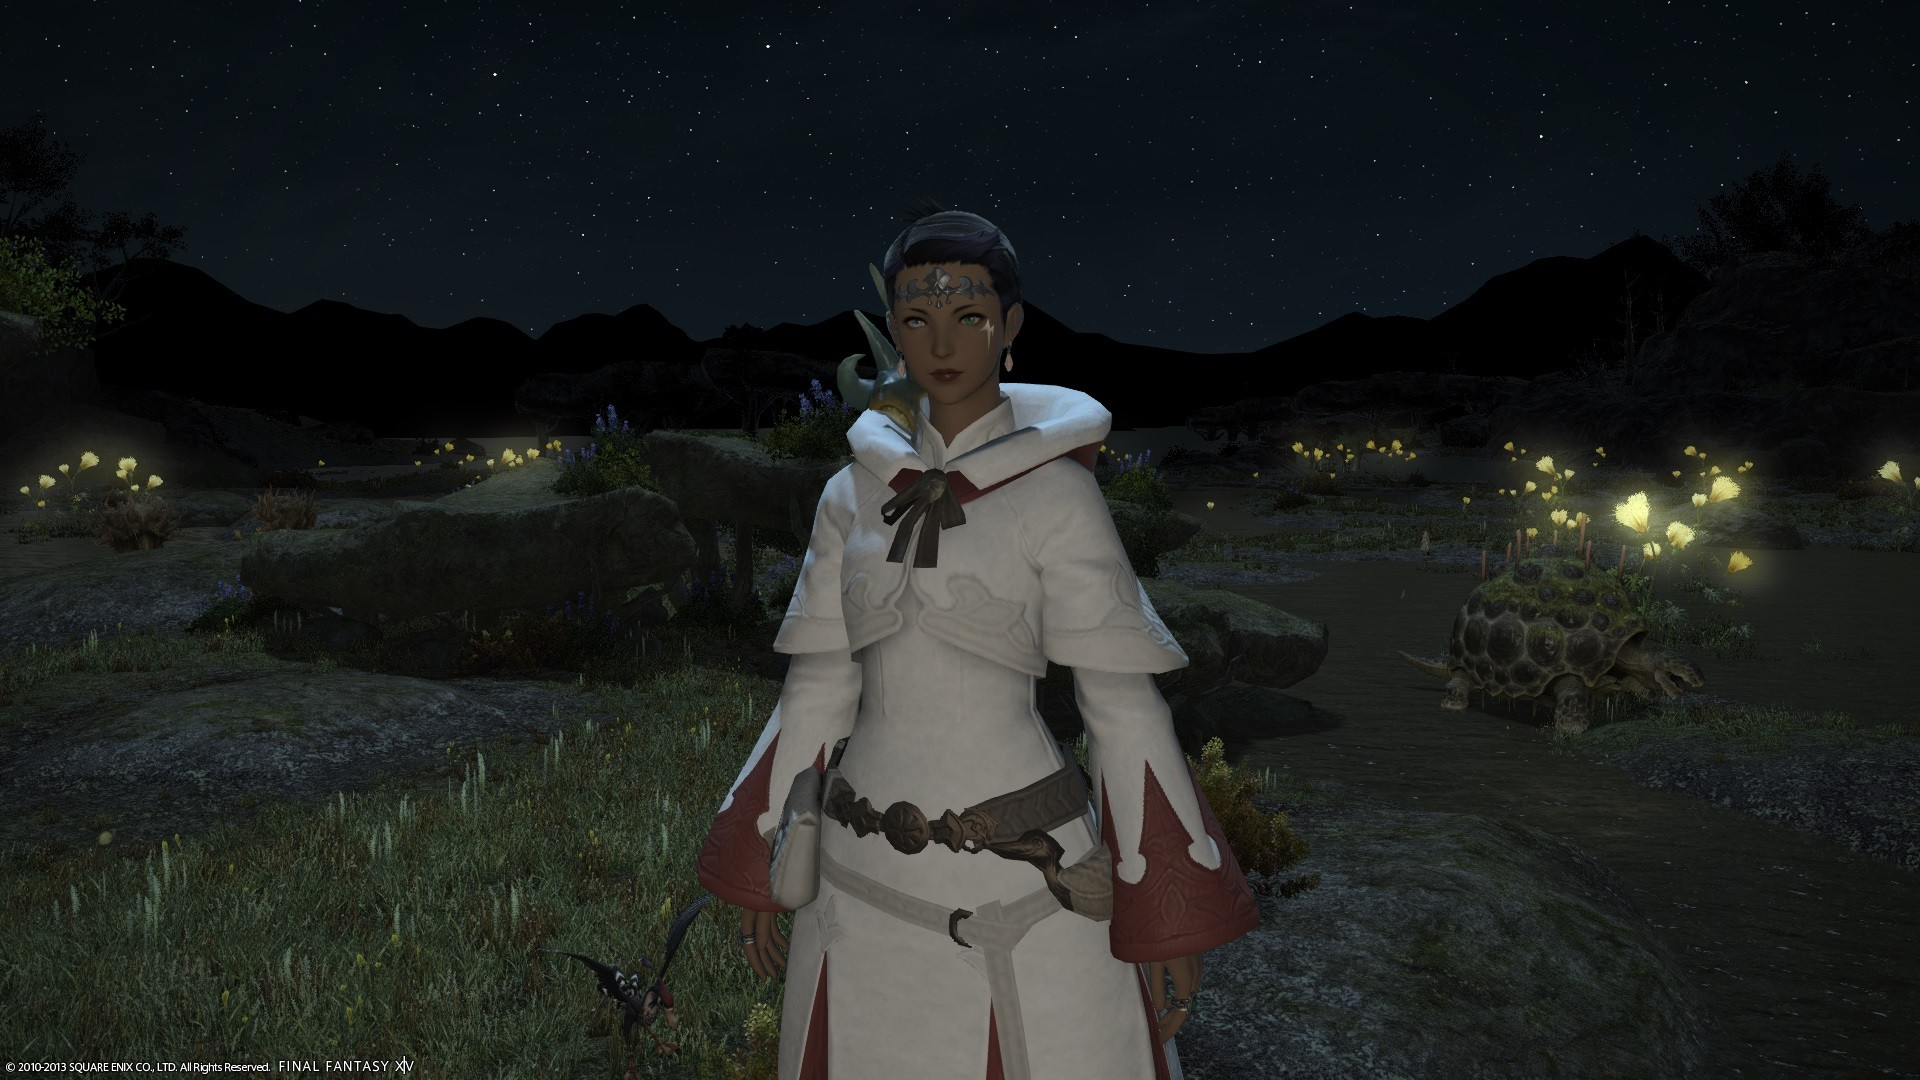 My White Mage dinged 50